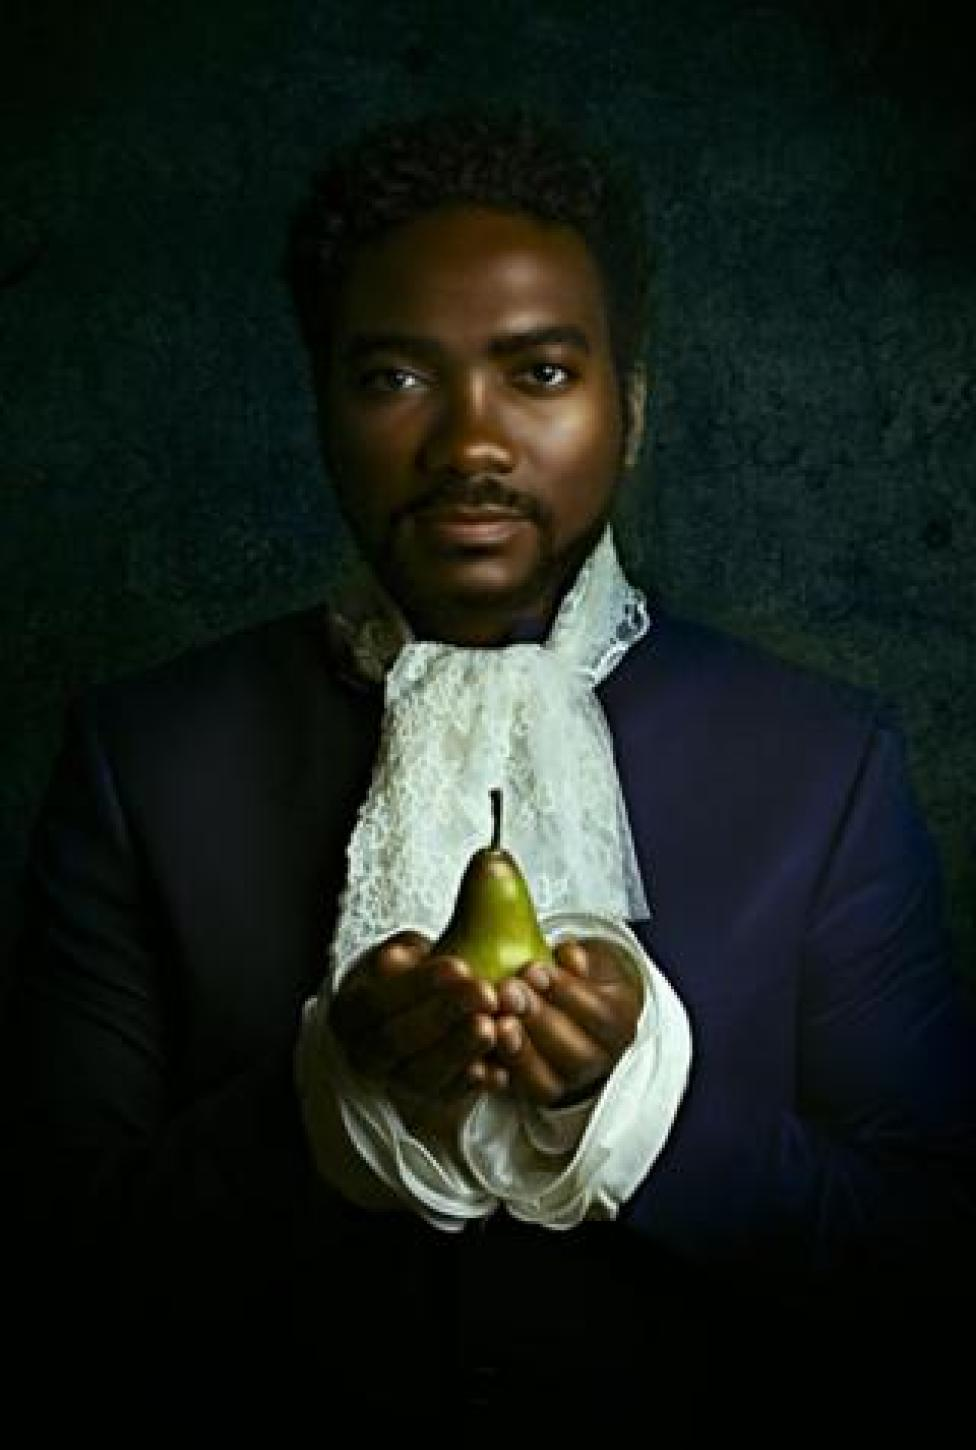 Portrait by Alanna Airitam showing a man holding a pear